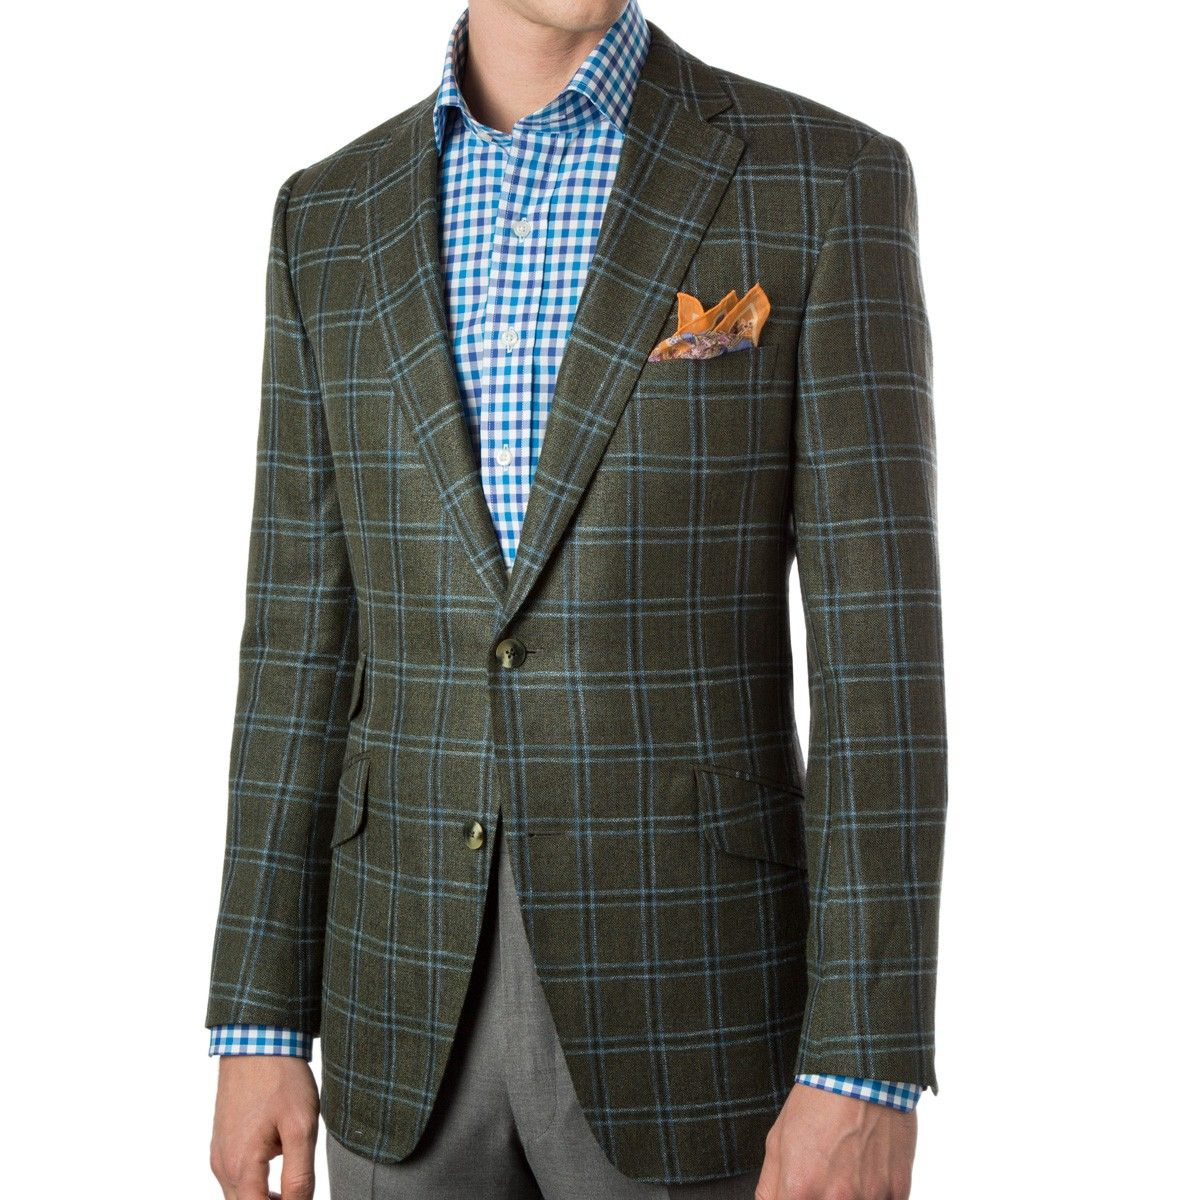 Green Window Pane silk and Wool Sport Coat | Bookster | Pinterest ...